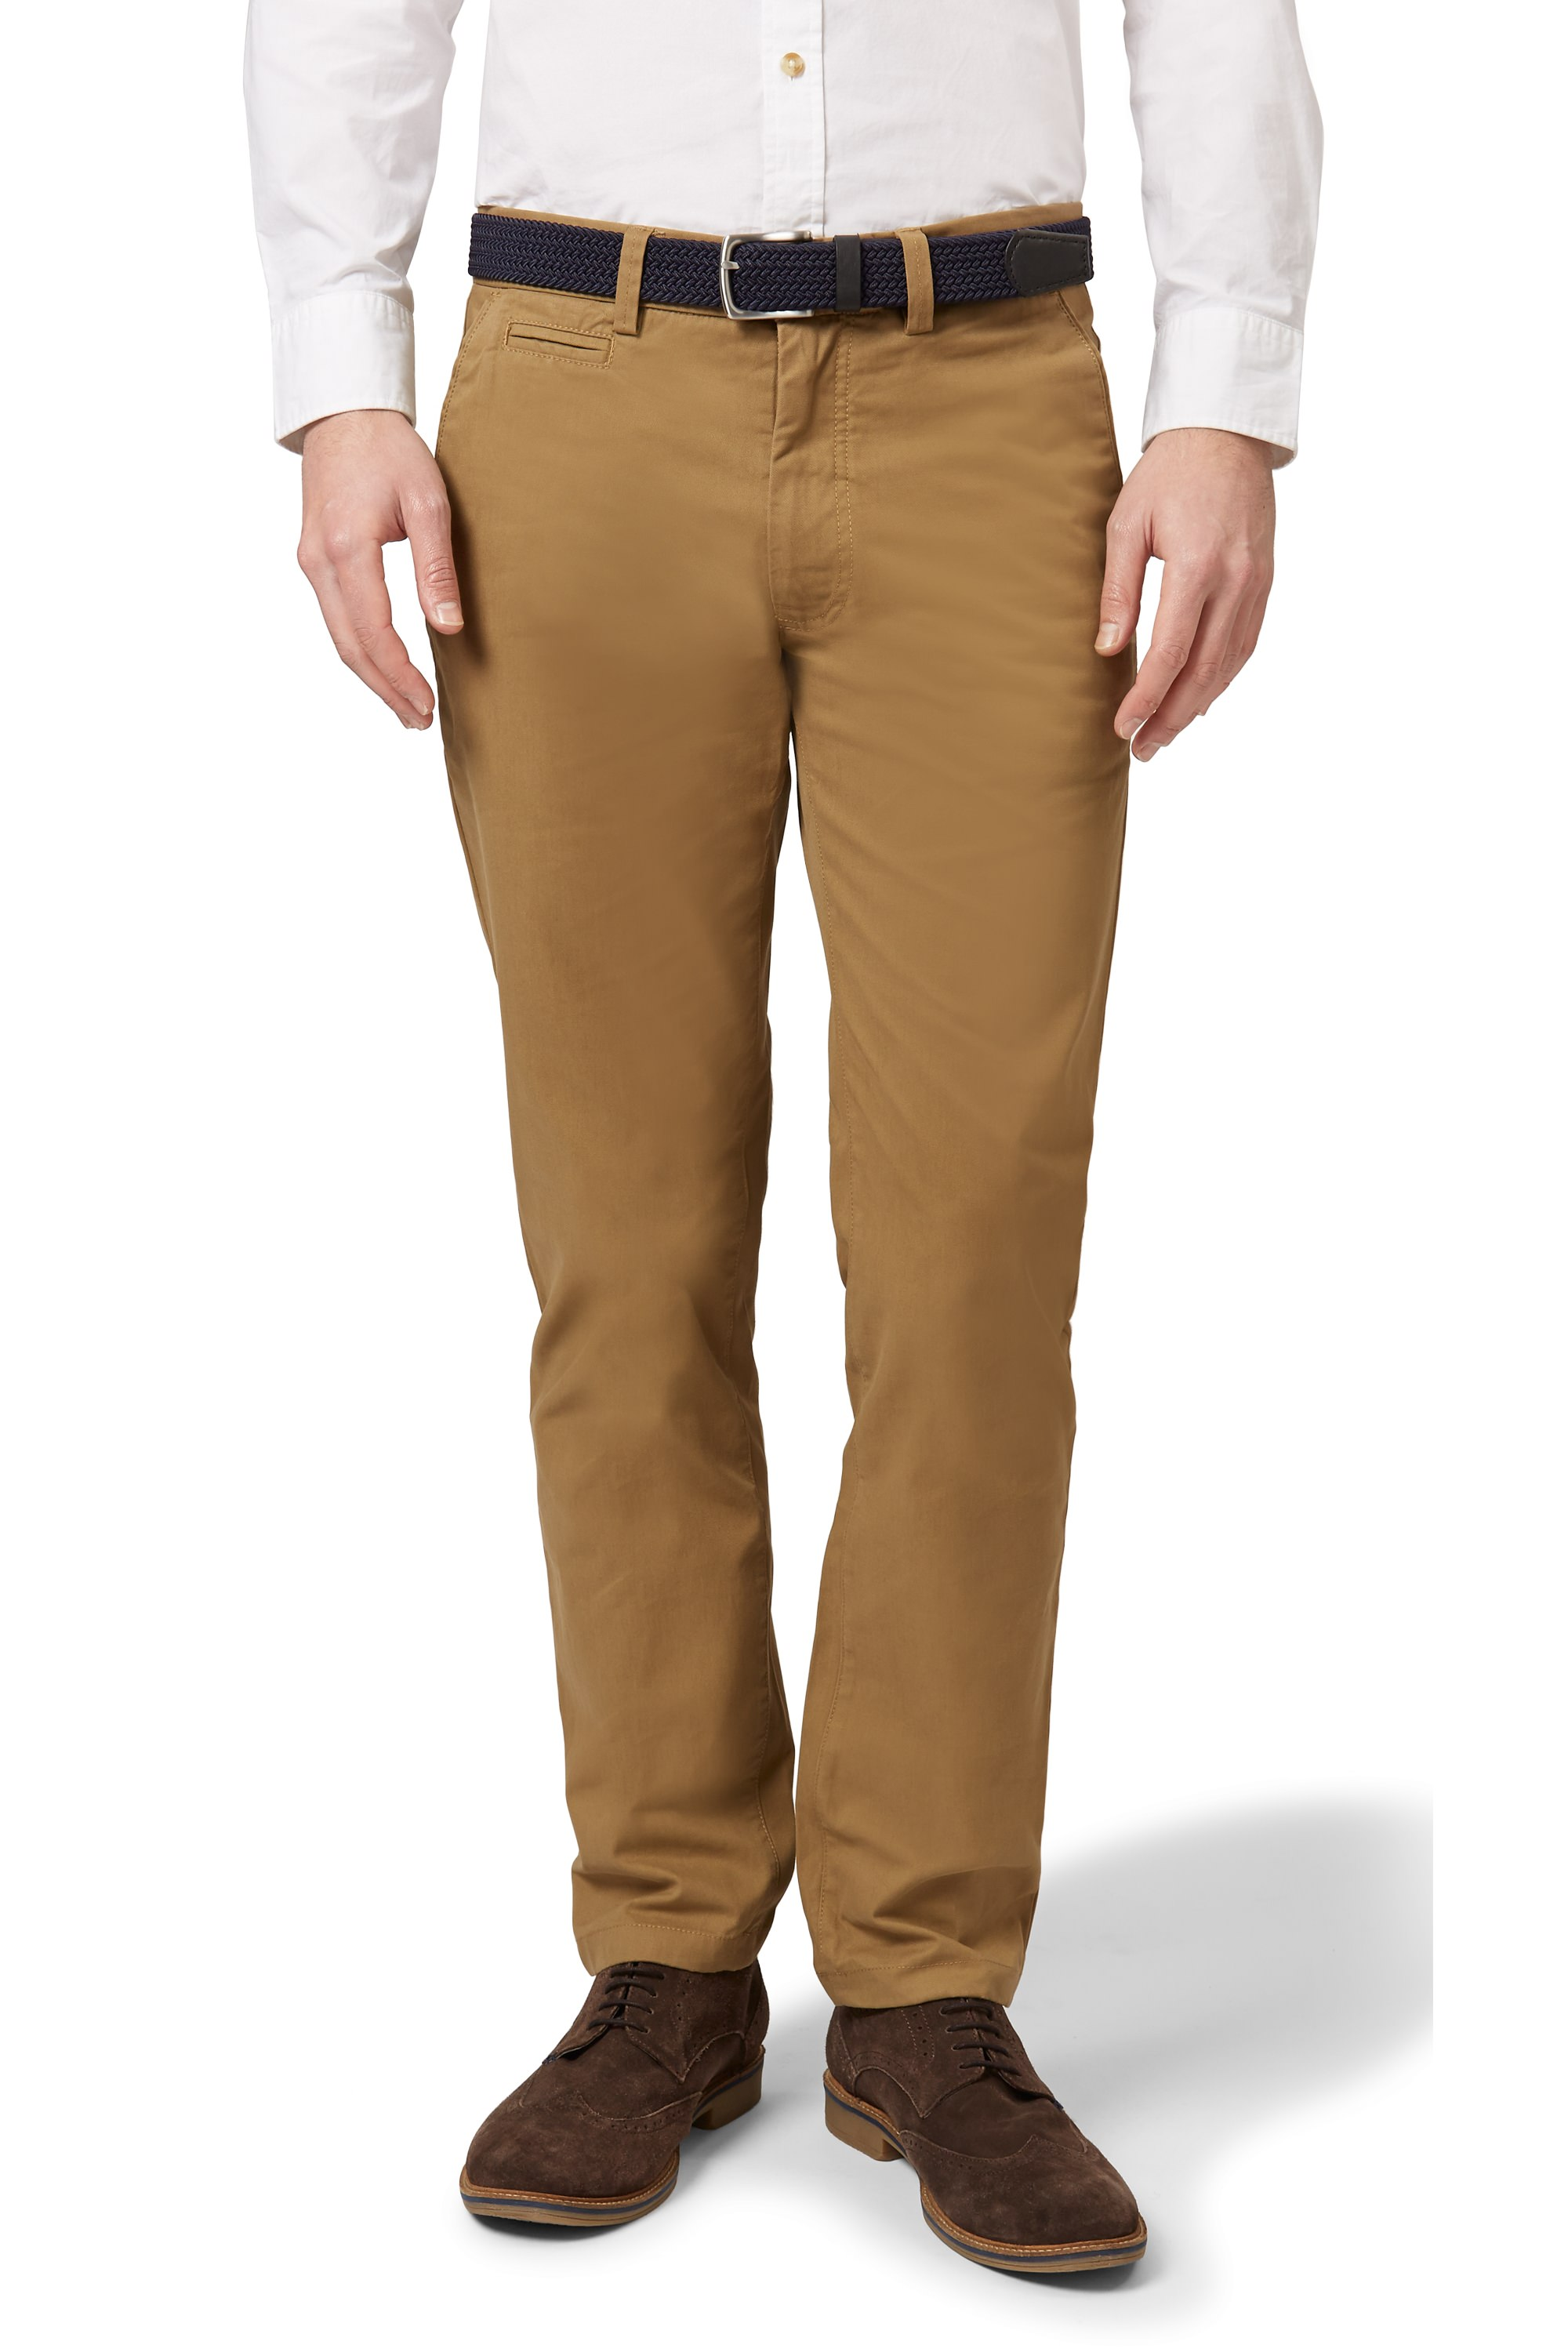 Moss 1851 Mens Tobacco Brown Chinos Tailored Fit Cotton Trousers ...